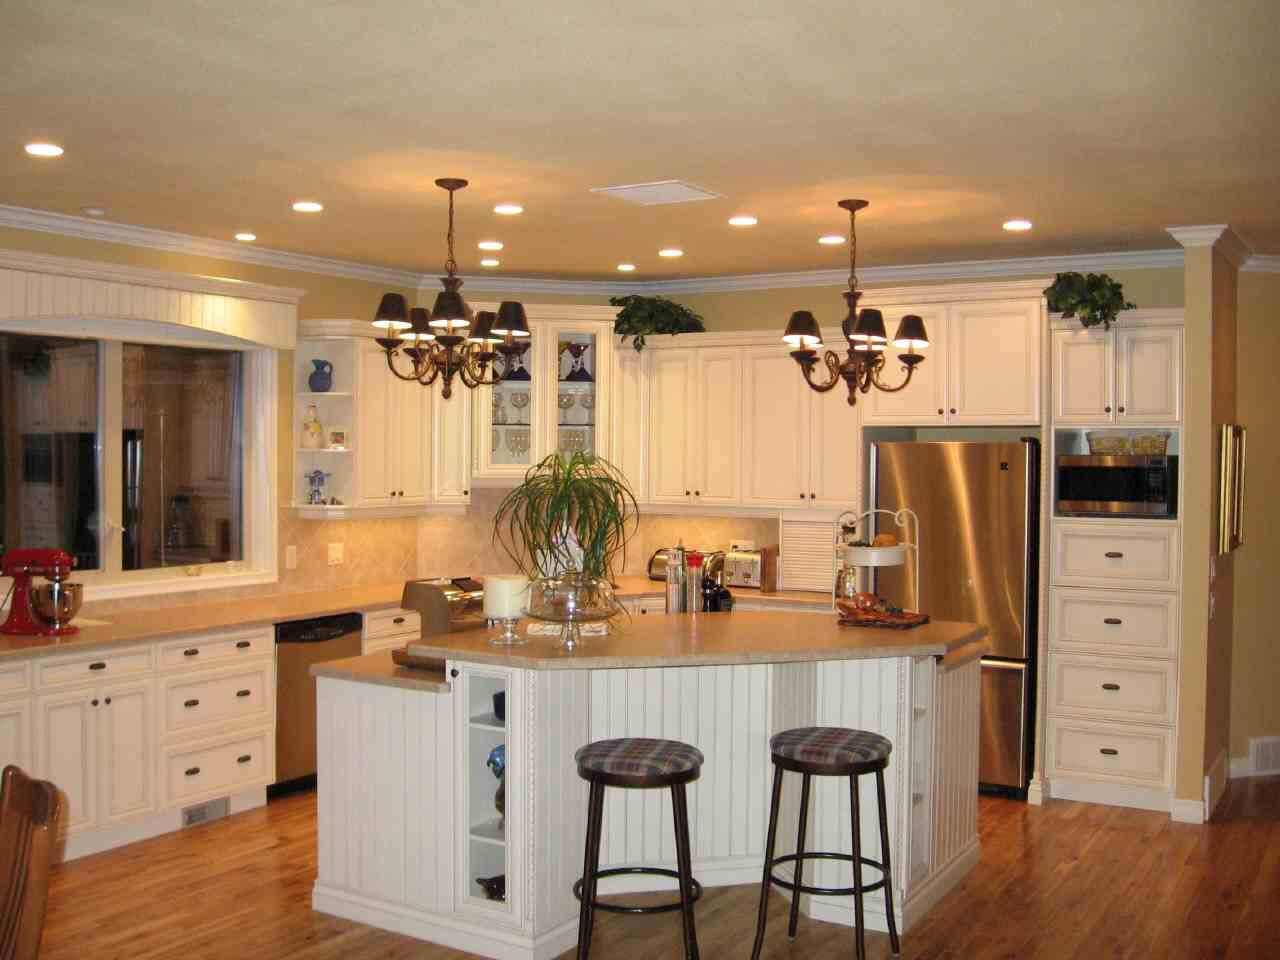 Kitchen island design ideas for small kitchens dream kitchens